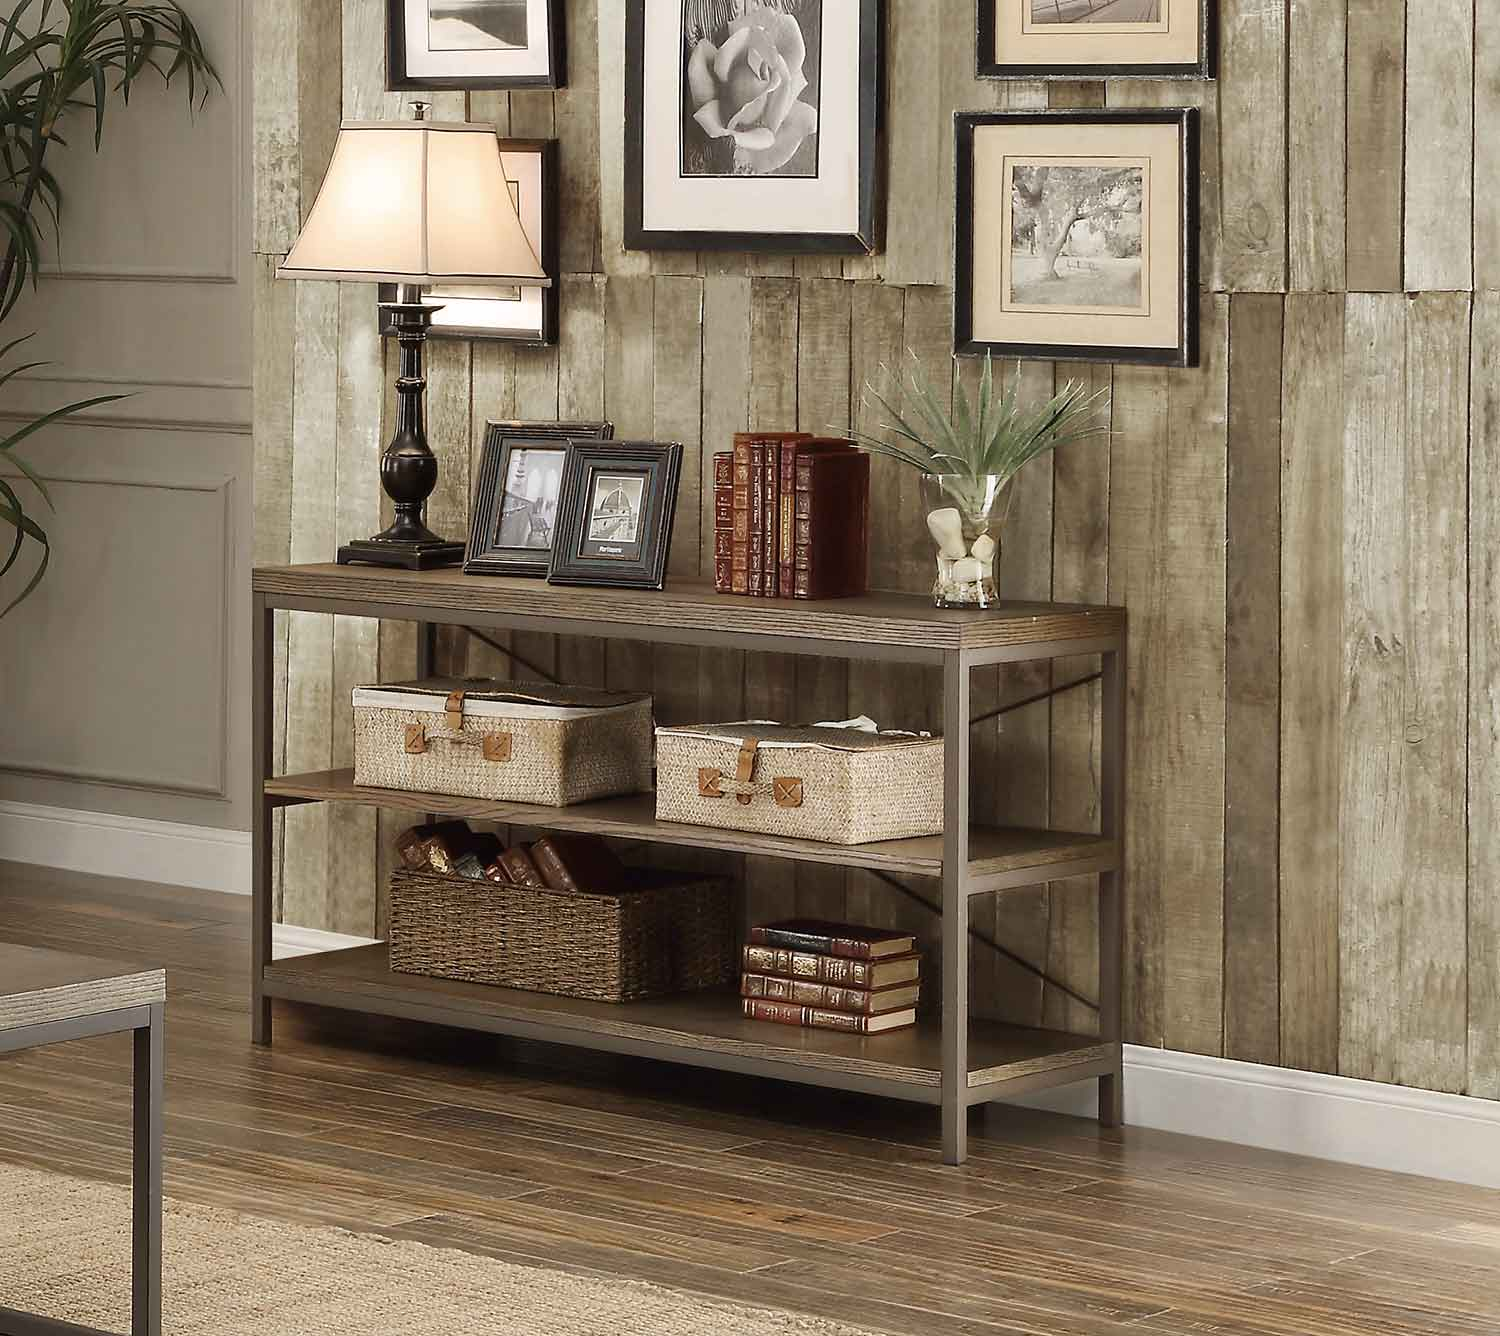 Homelegance Daria Sofa Table/TV Stand - Weathered Wood Table Top with Metal Framing